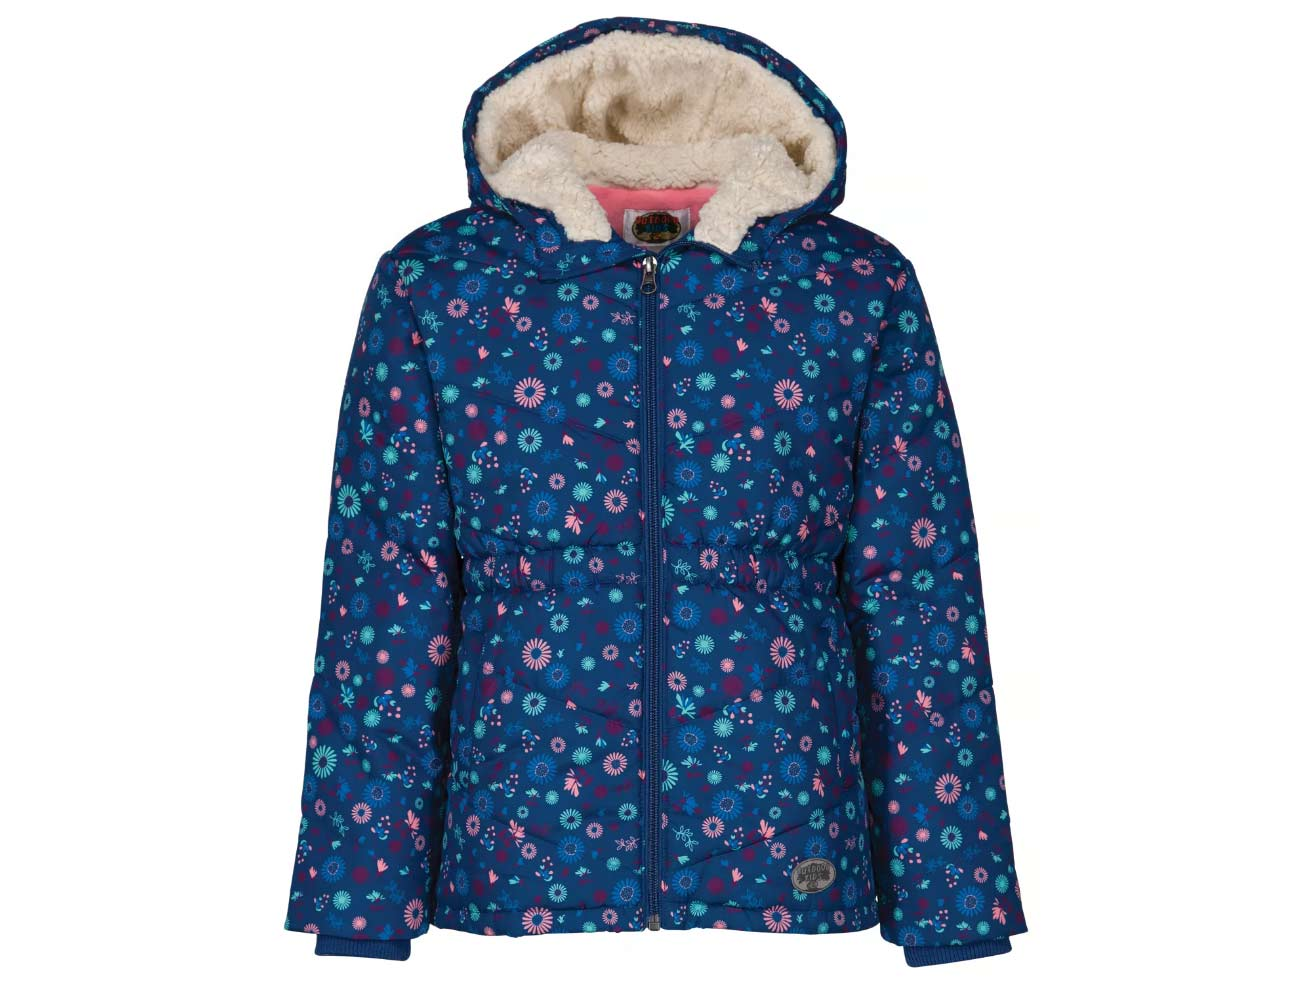 Outdoor Kids Puffer Jacket for Toddlers or Girls